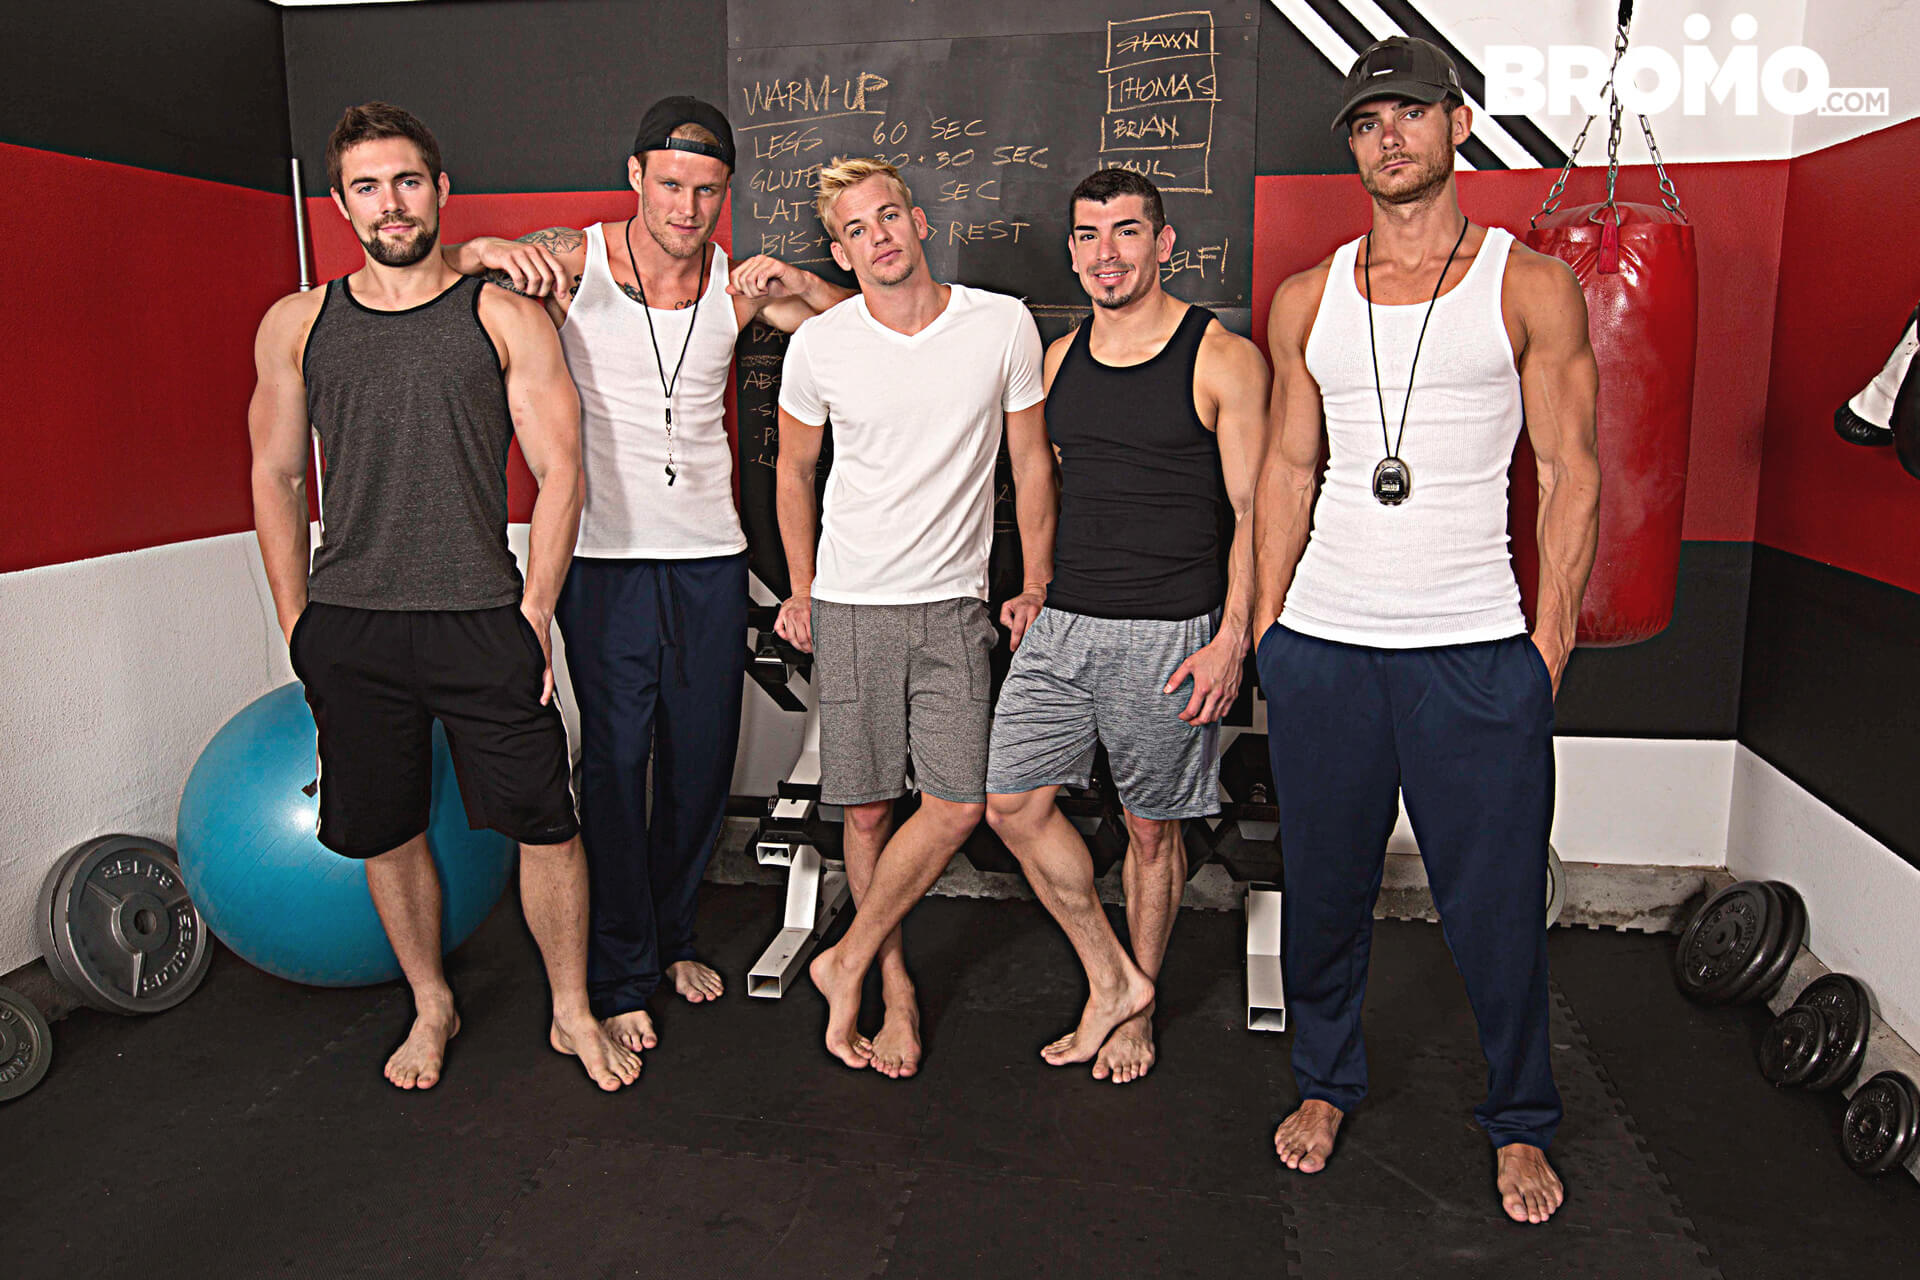 bromo train me part 4 shawn reeve jeremy spreadums john delta evan marco griffin barrows gay porn blog image 8